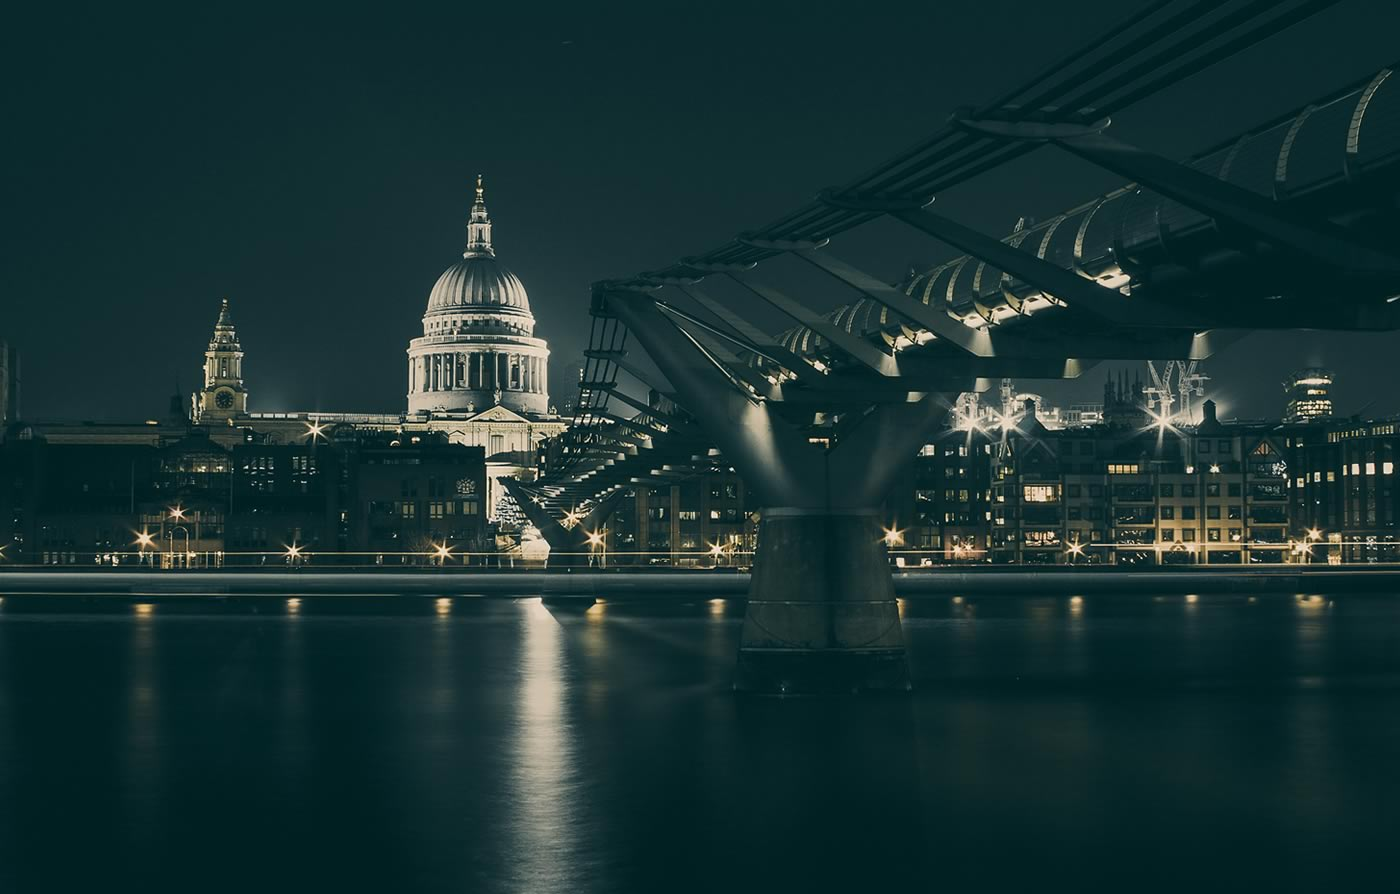 St Pauls Cathederal and bridge, London